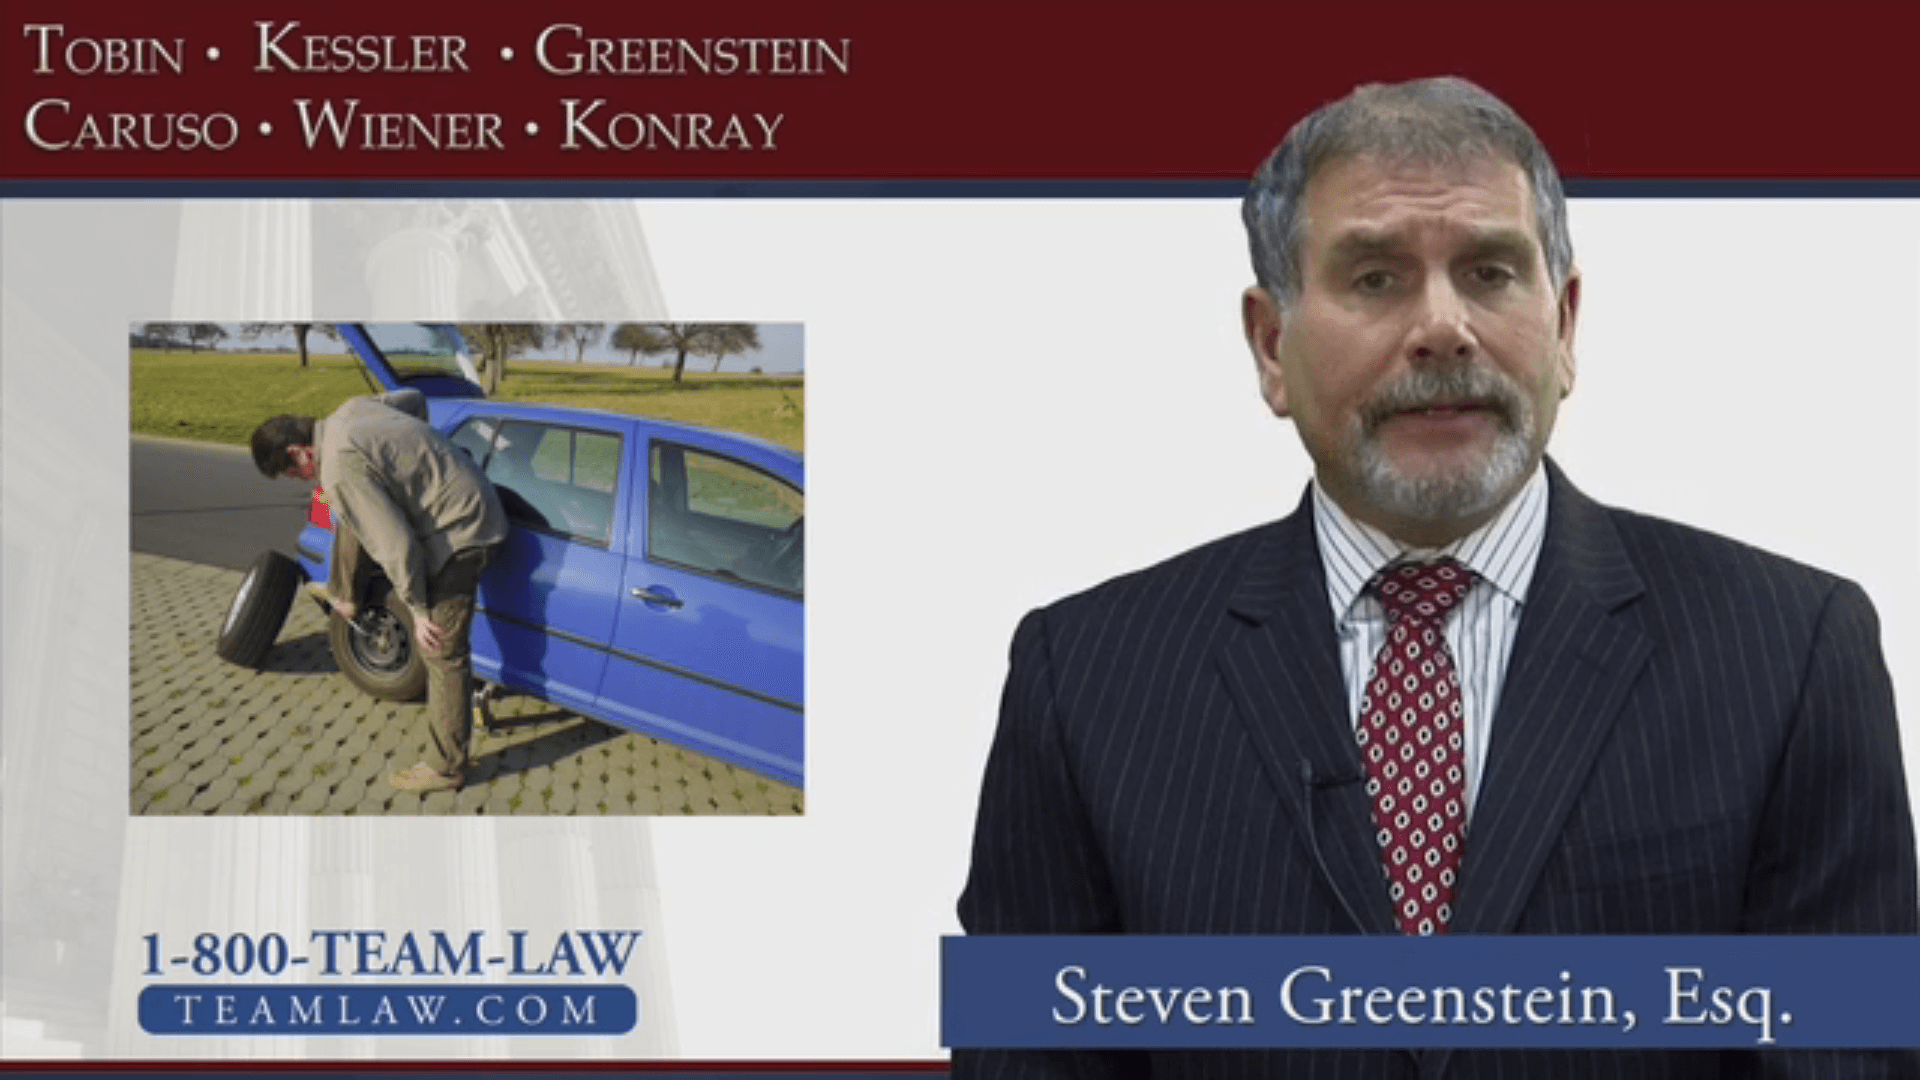 Defective Product Lawyers Clark, NJ | Union County | Middlesex | Liability